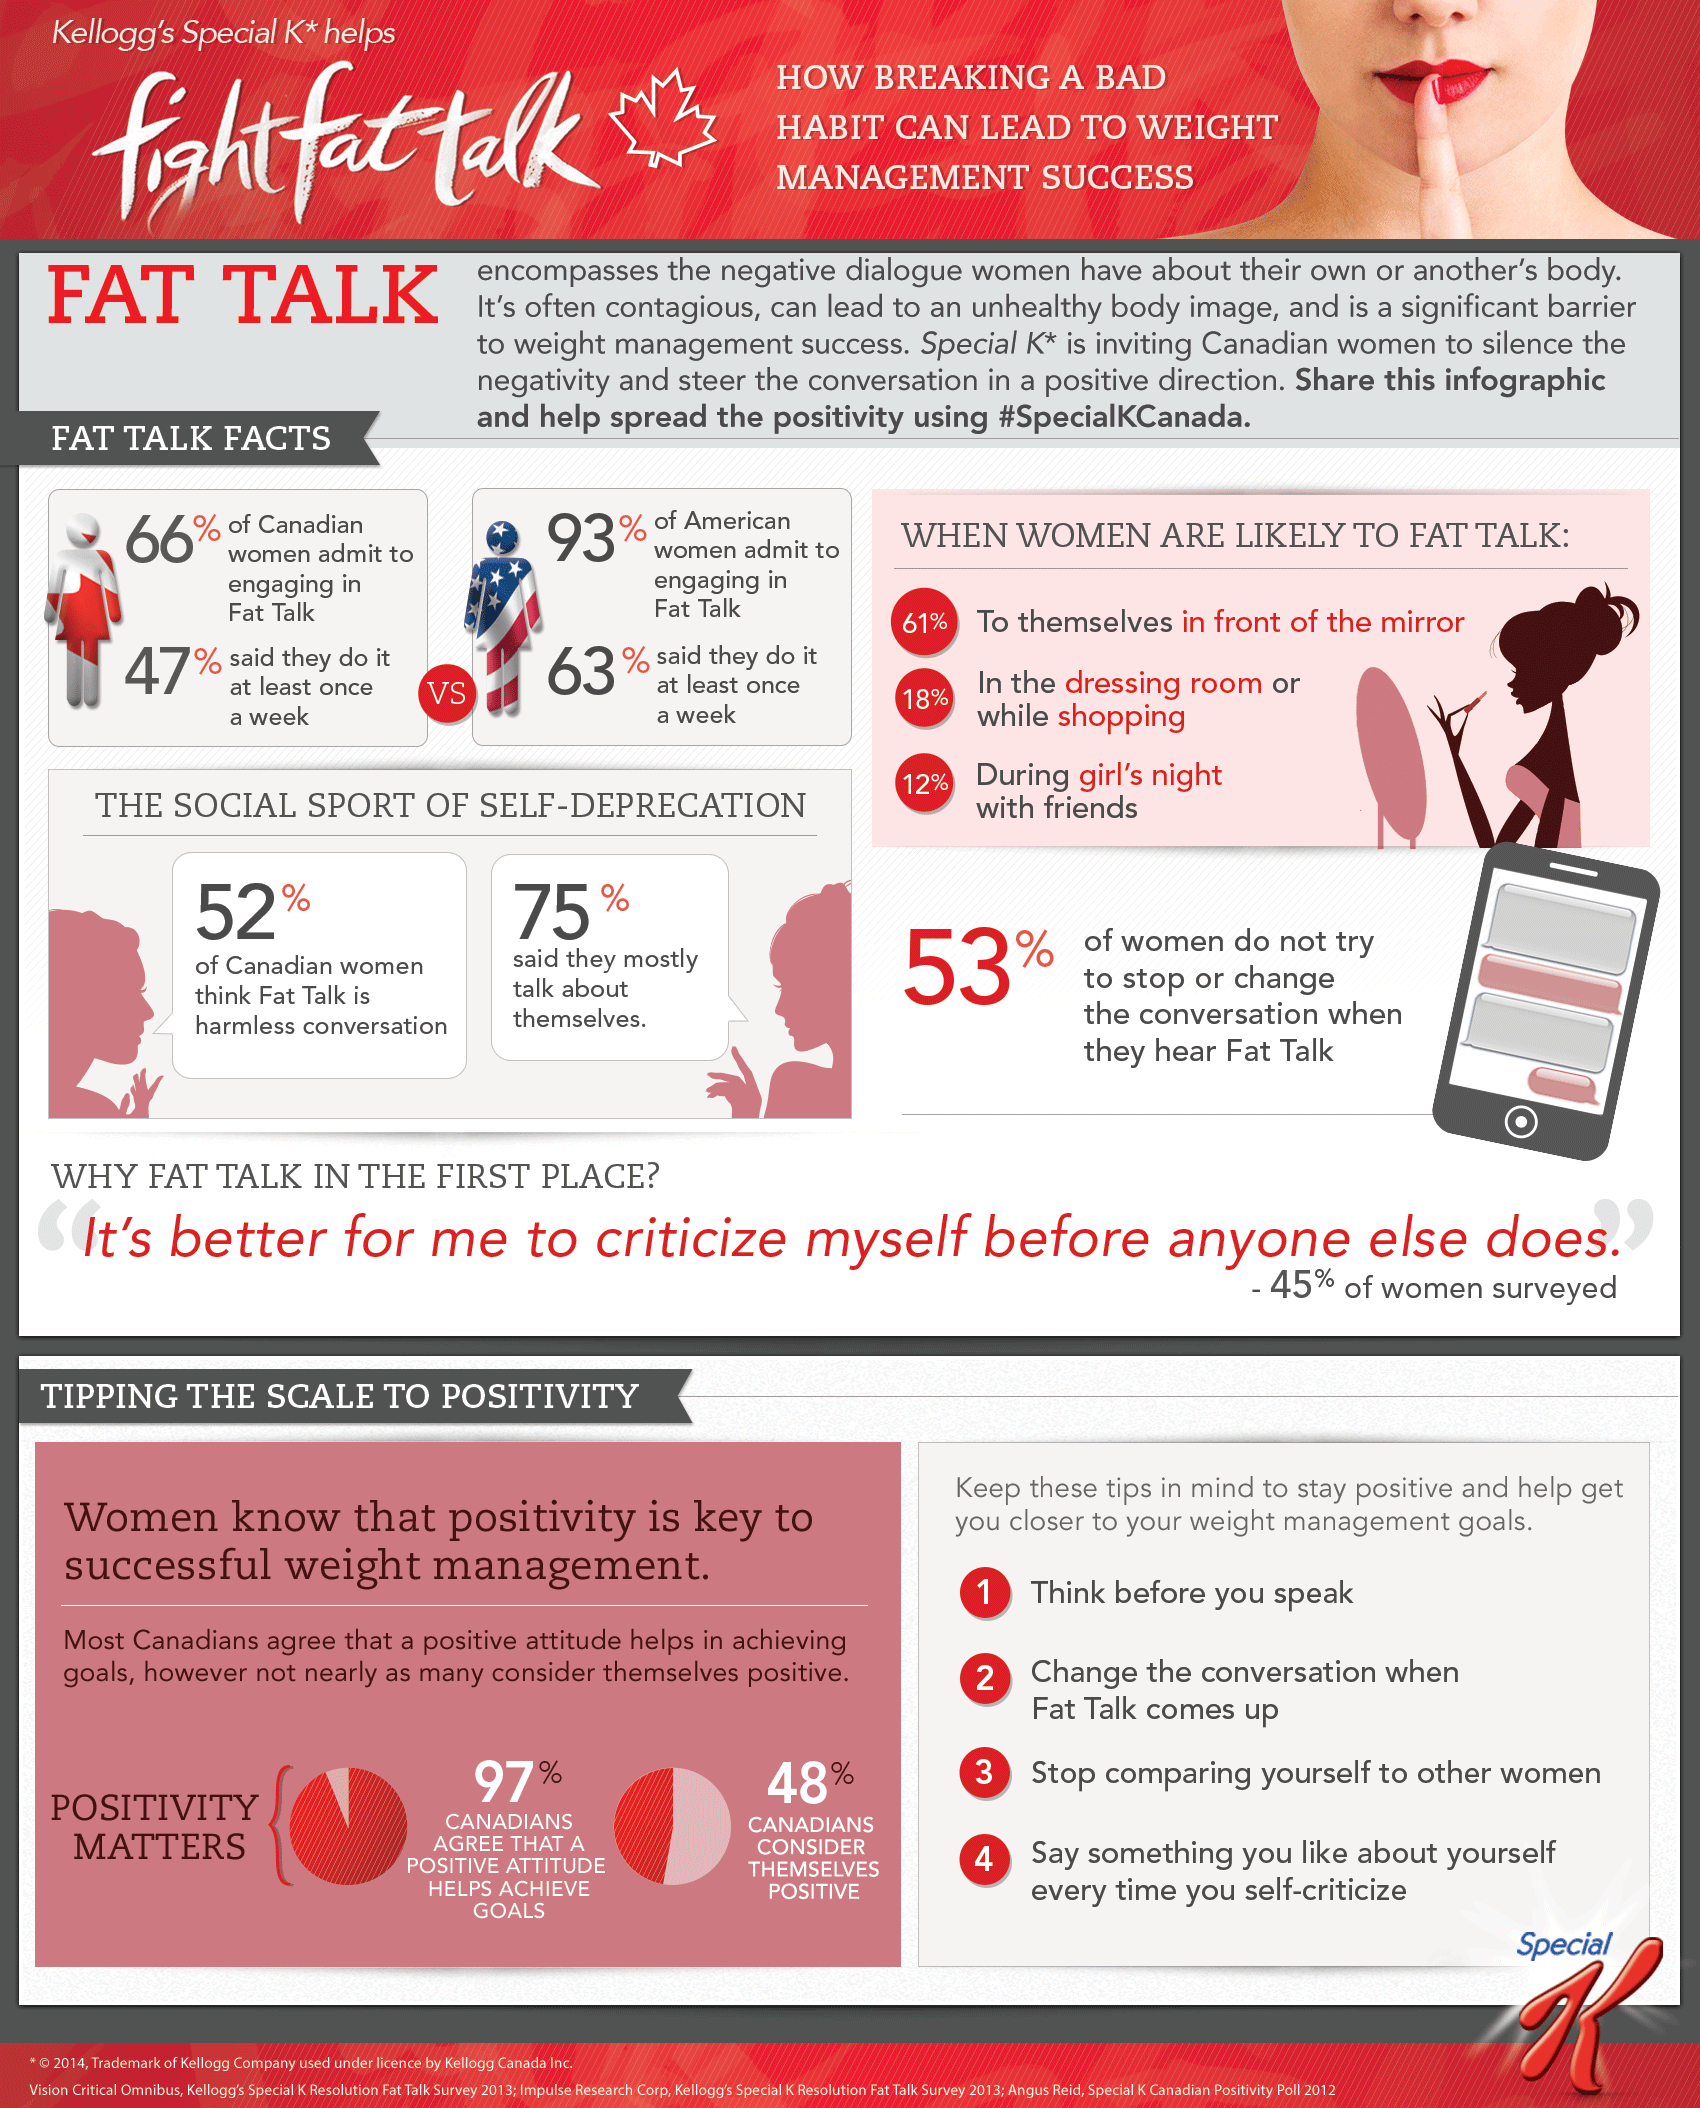 Fight Fat Talk with Positive talk